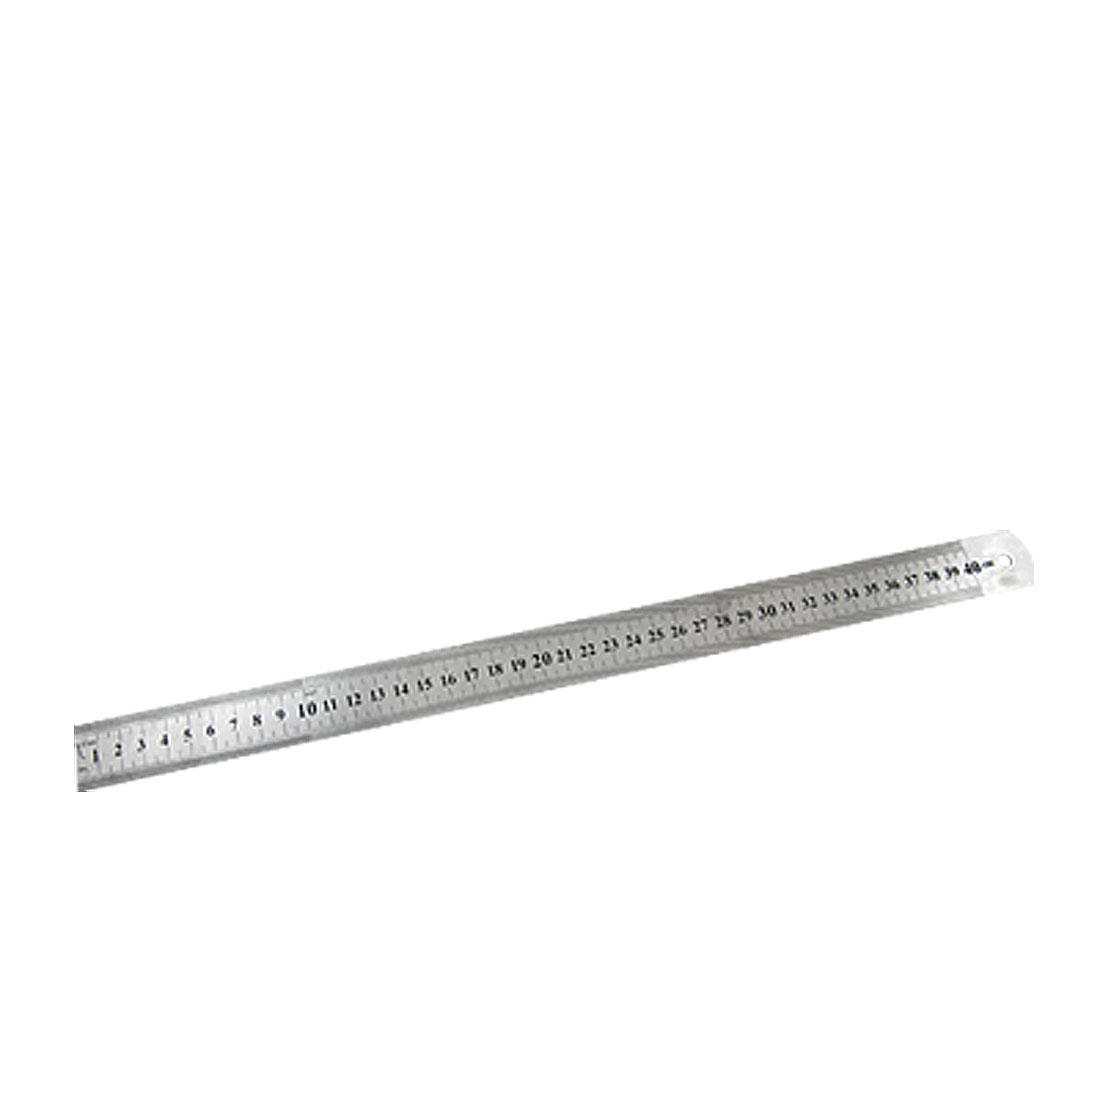 Precision Mark Stainless Metal 40cm Length Measure Ruler